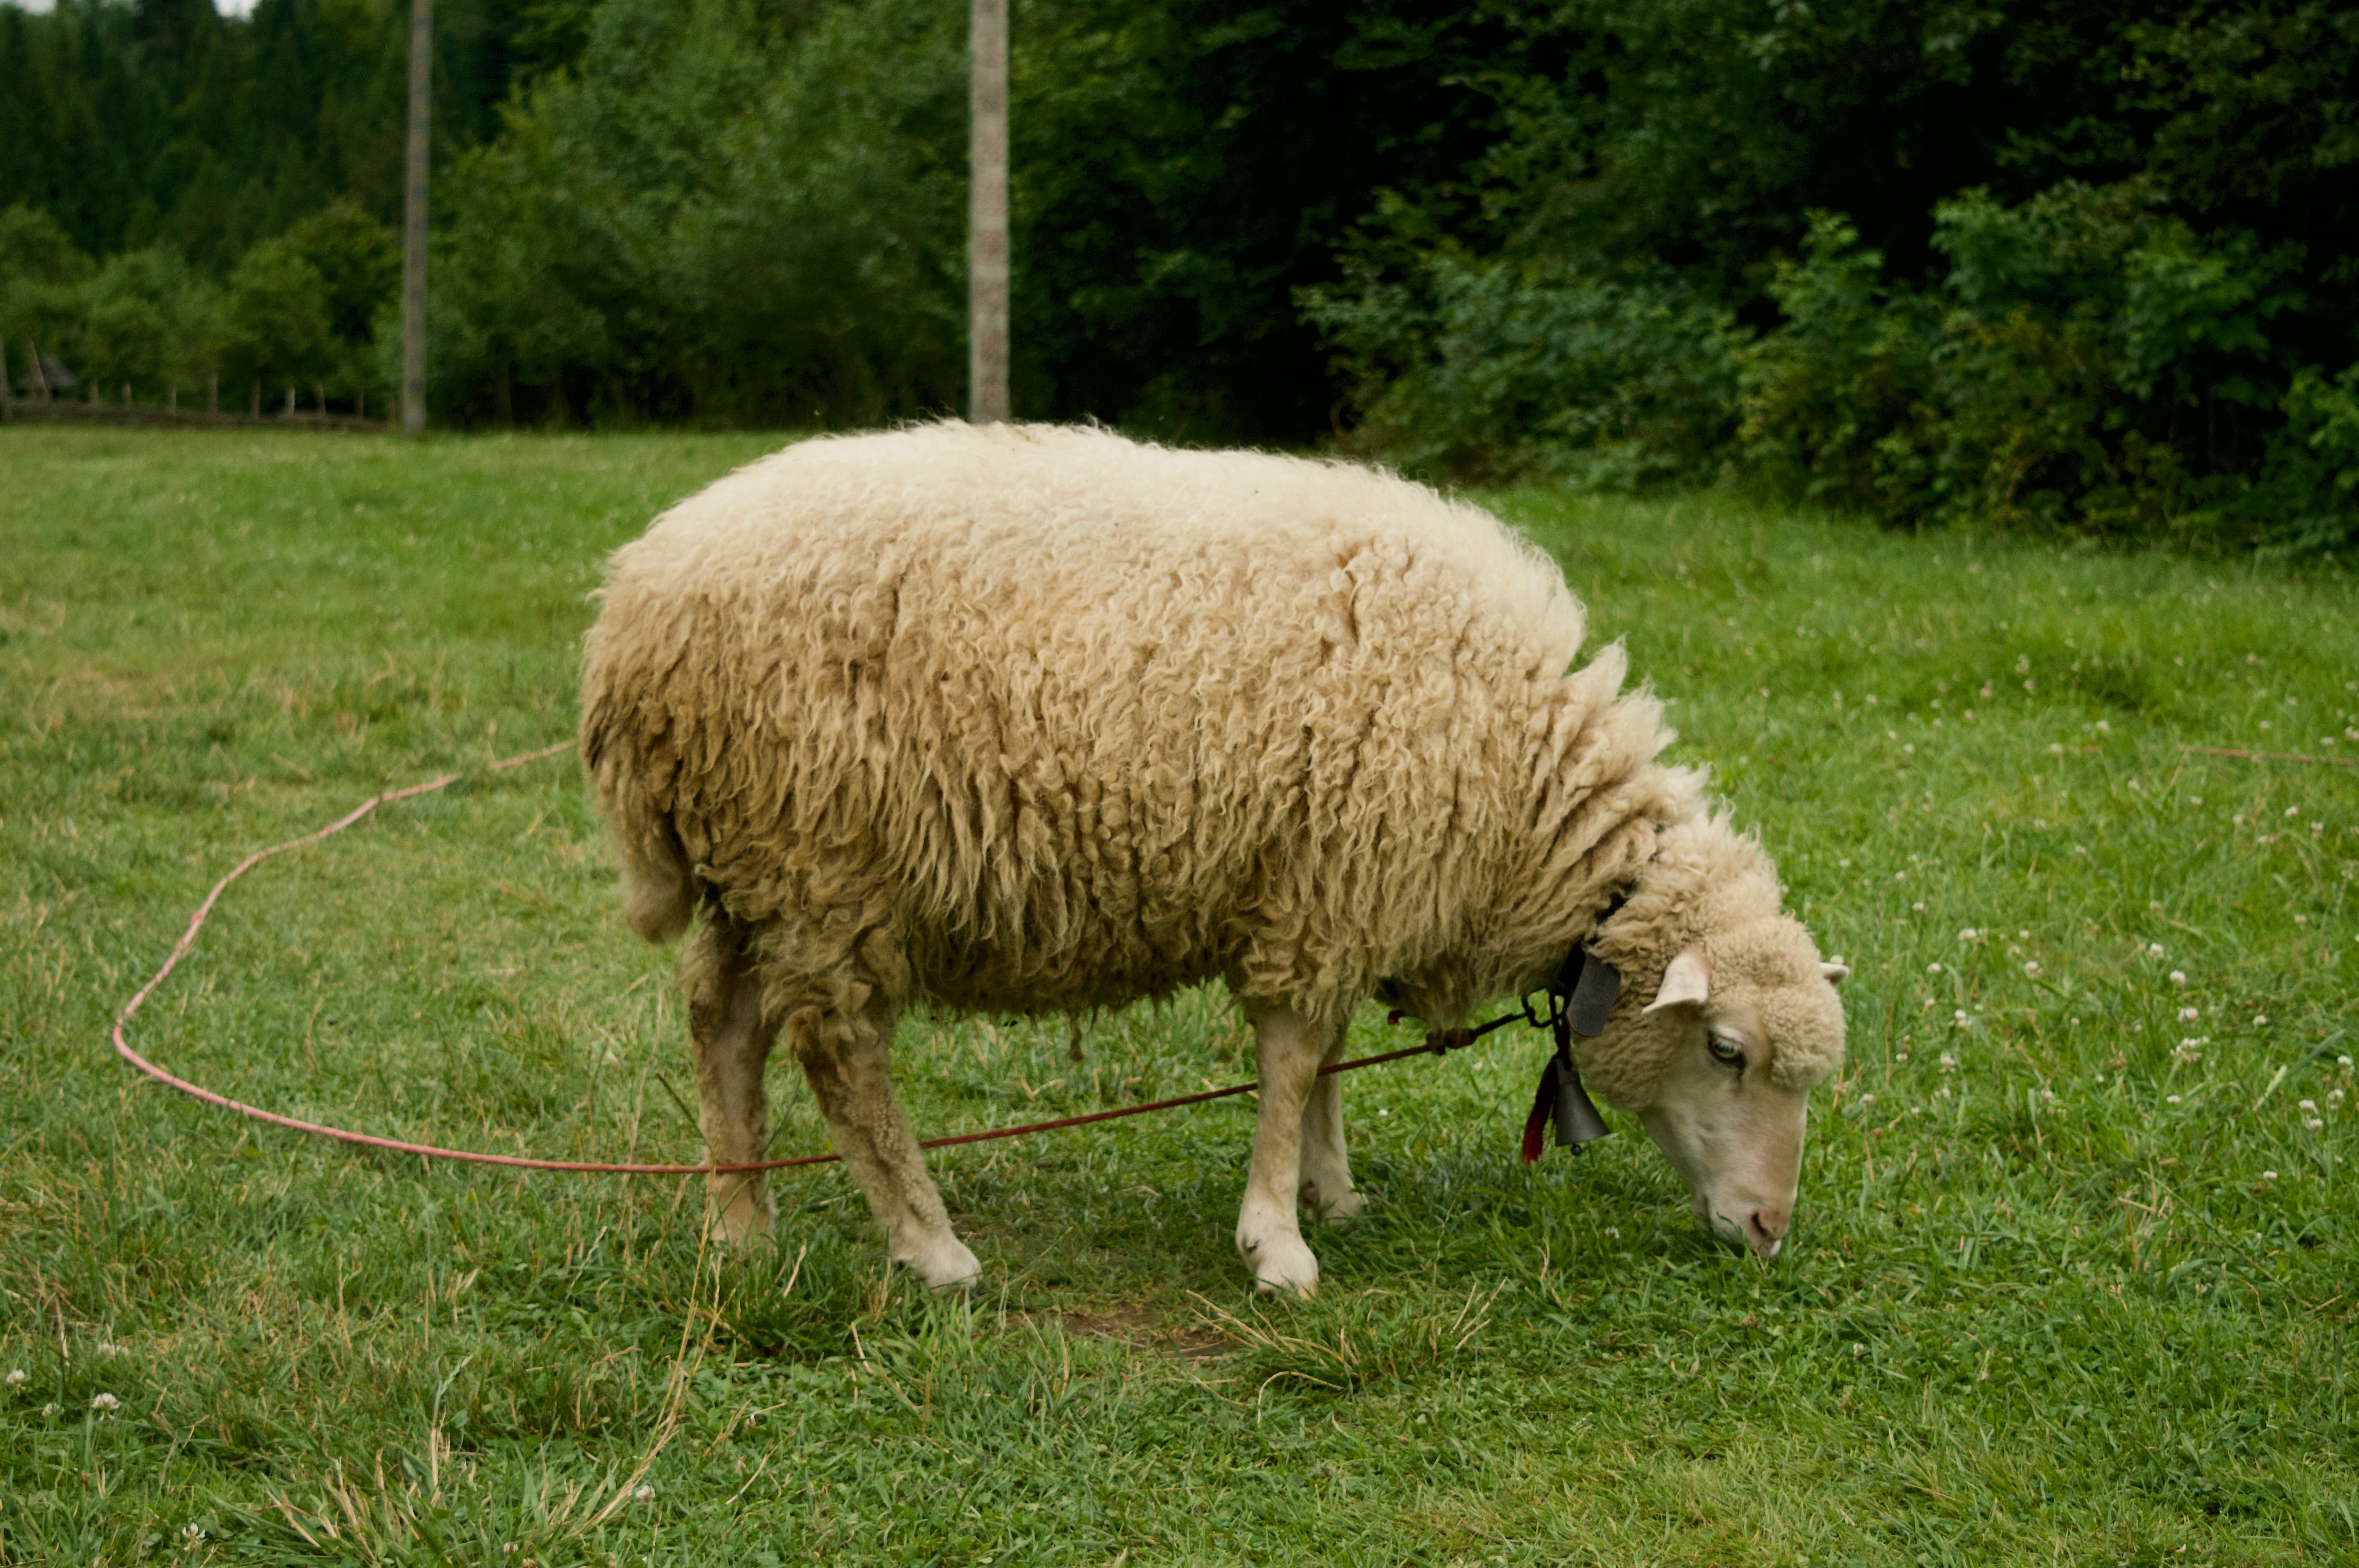 White Sheep On Grass